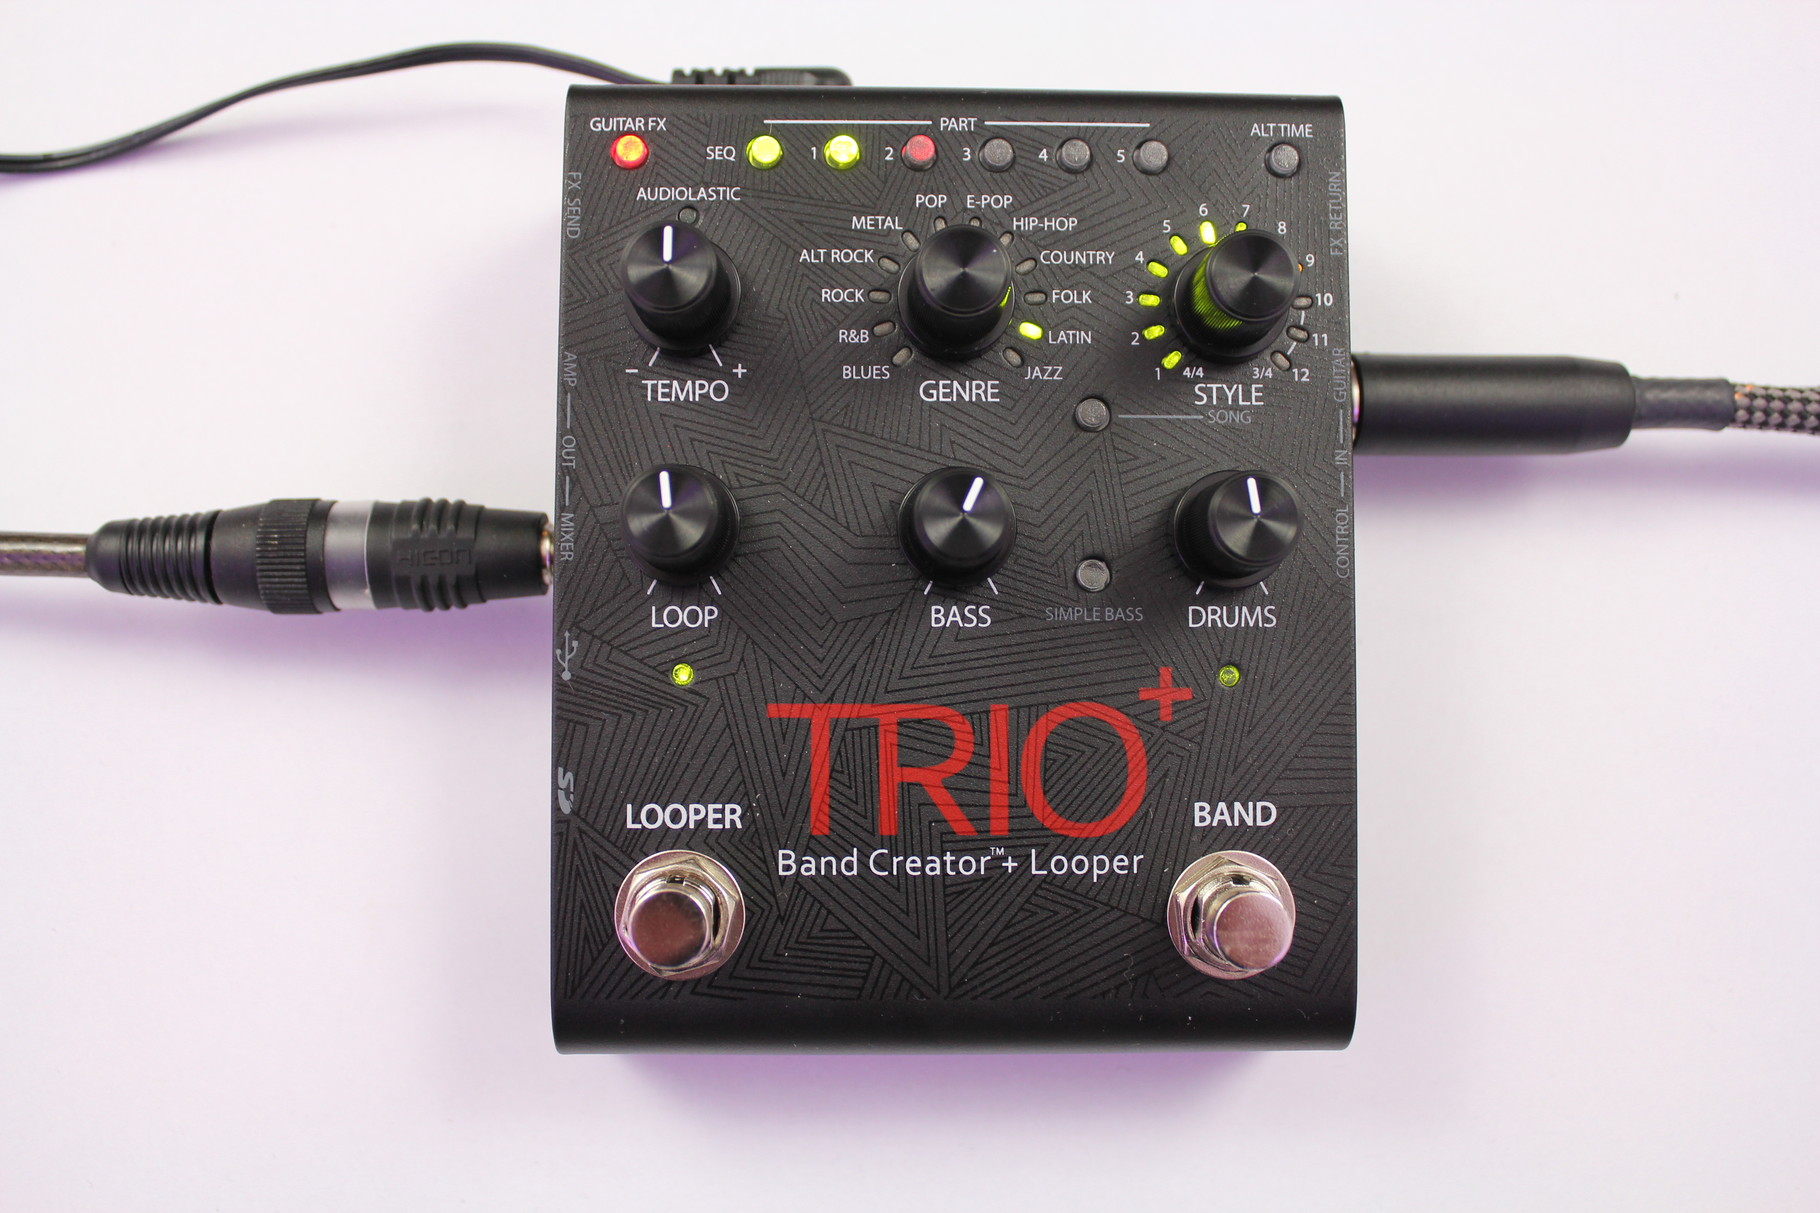 Digitech Trio+ Bandcreator with Looper